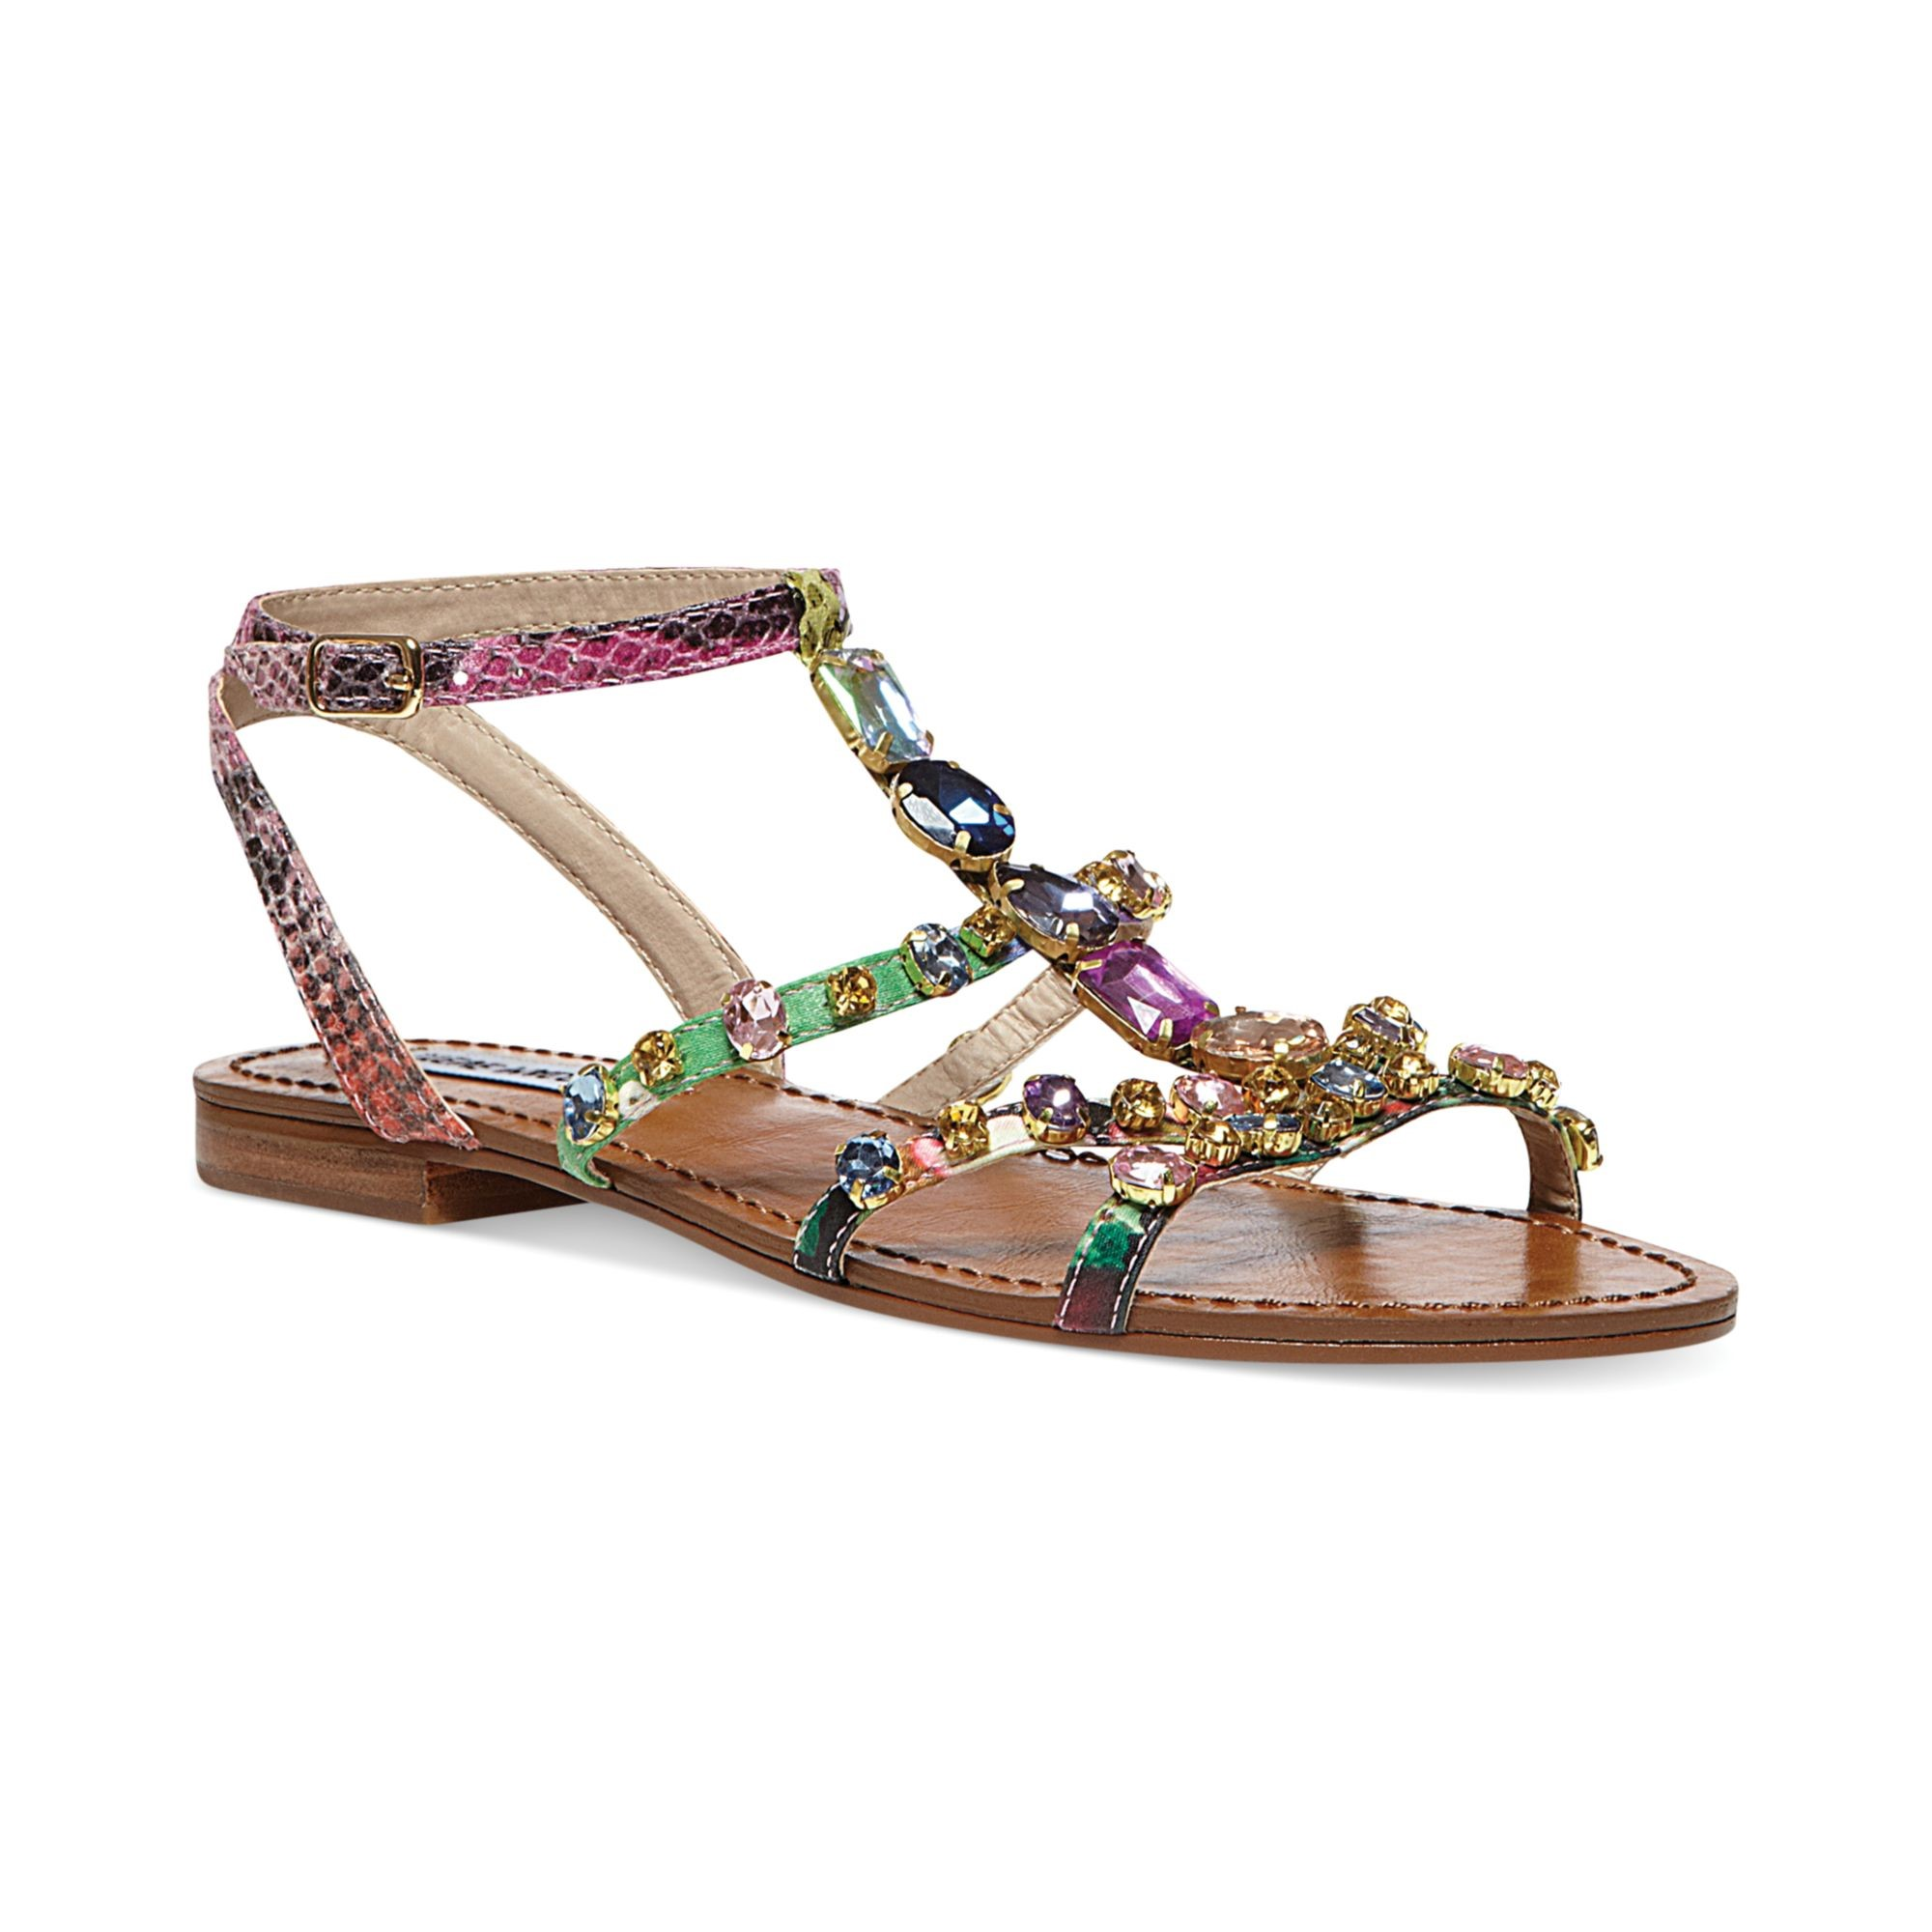 Flat Sandals essential shoes - Flat Sandals - Essential Shoes Every Women Should Have – 2018